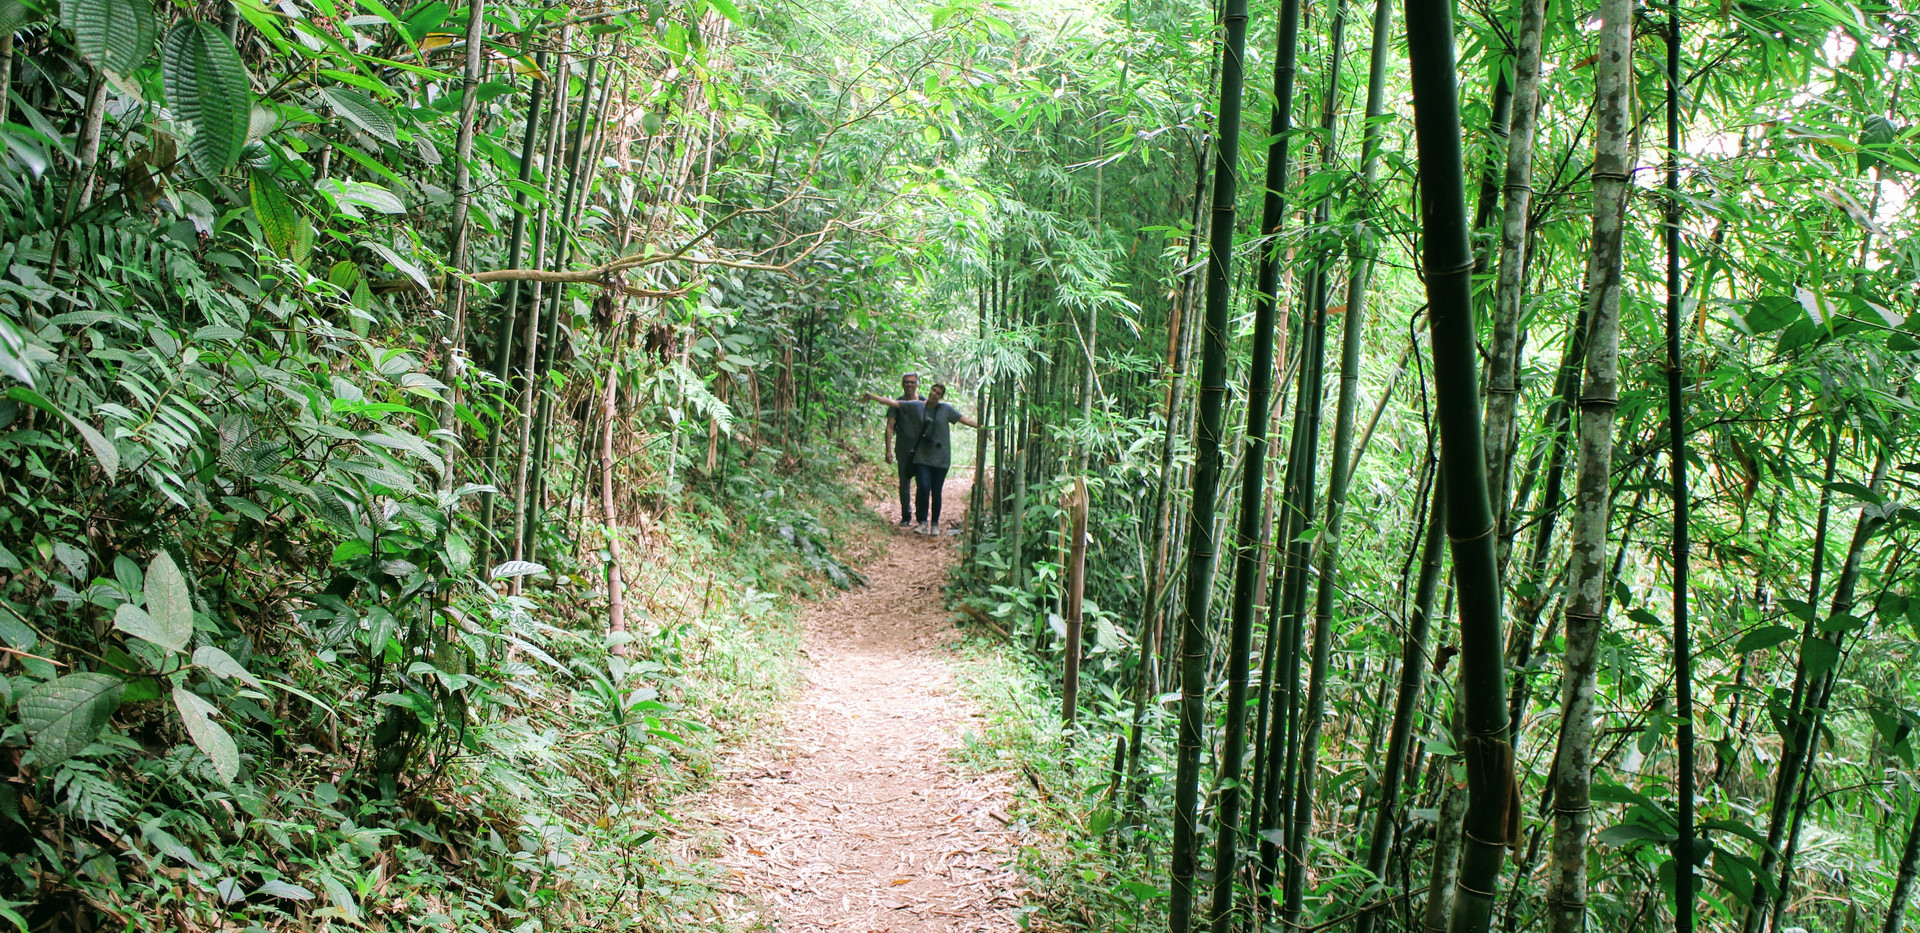 Trekking the bamboo forest in Sapa